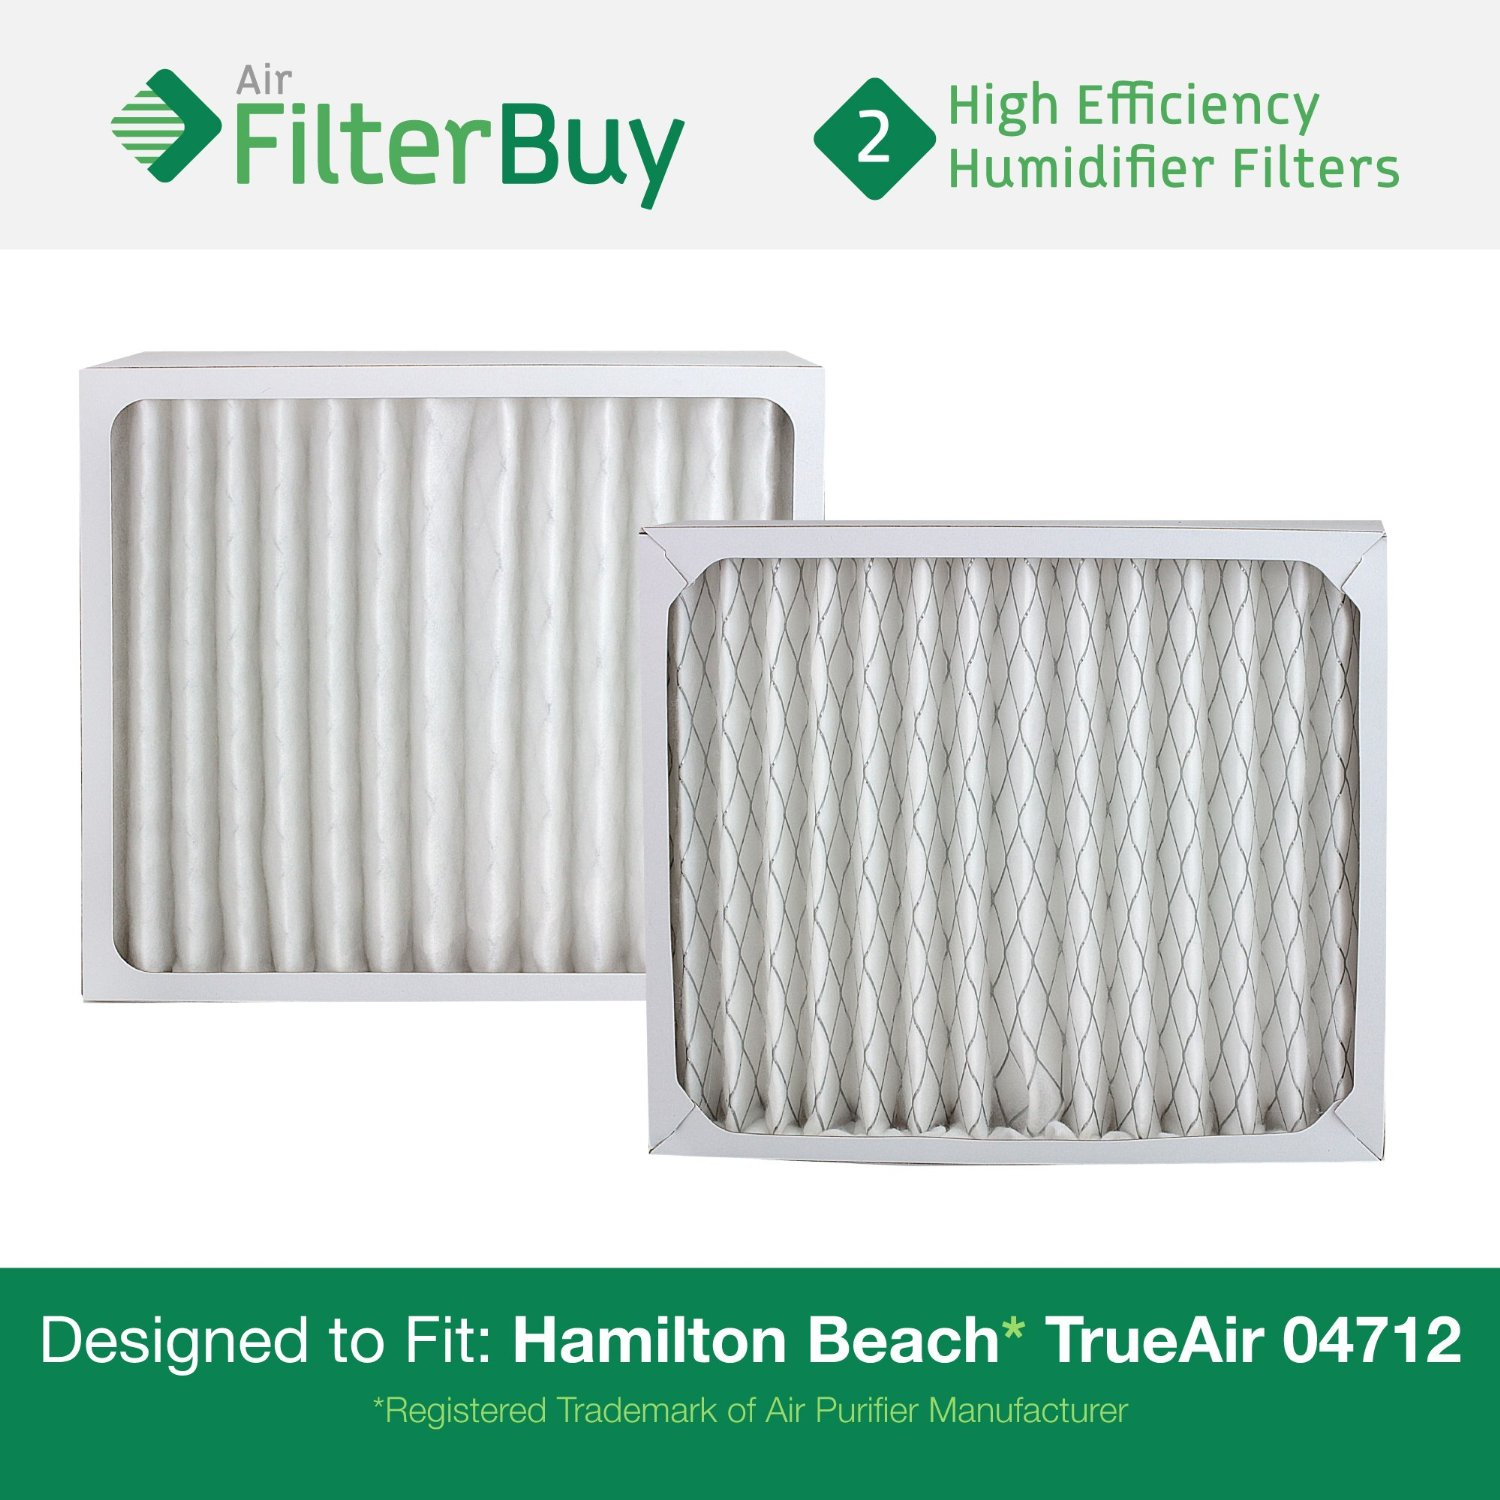 2 - 04712 Hamilton Beach True Air Replacement Air Purifier Filters.  Designed by FilterBuy to